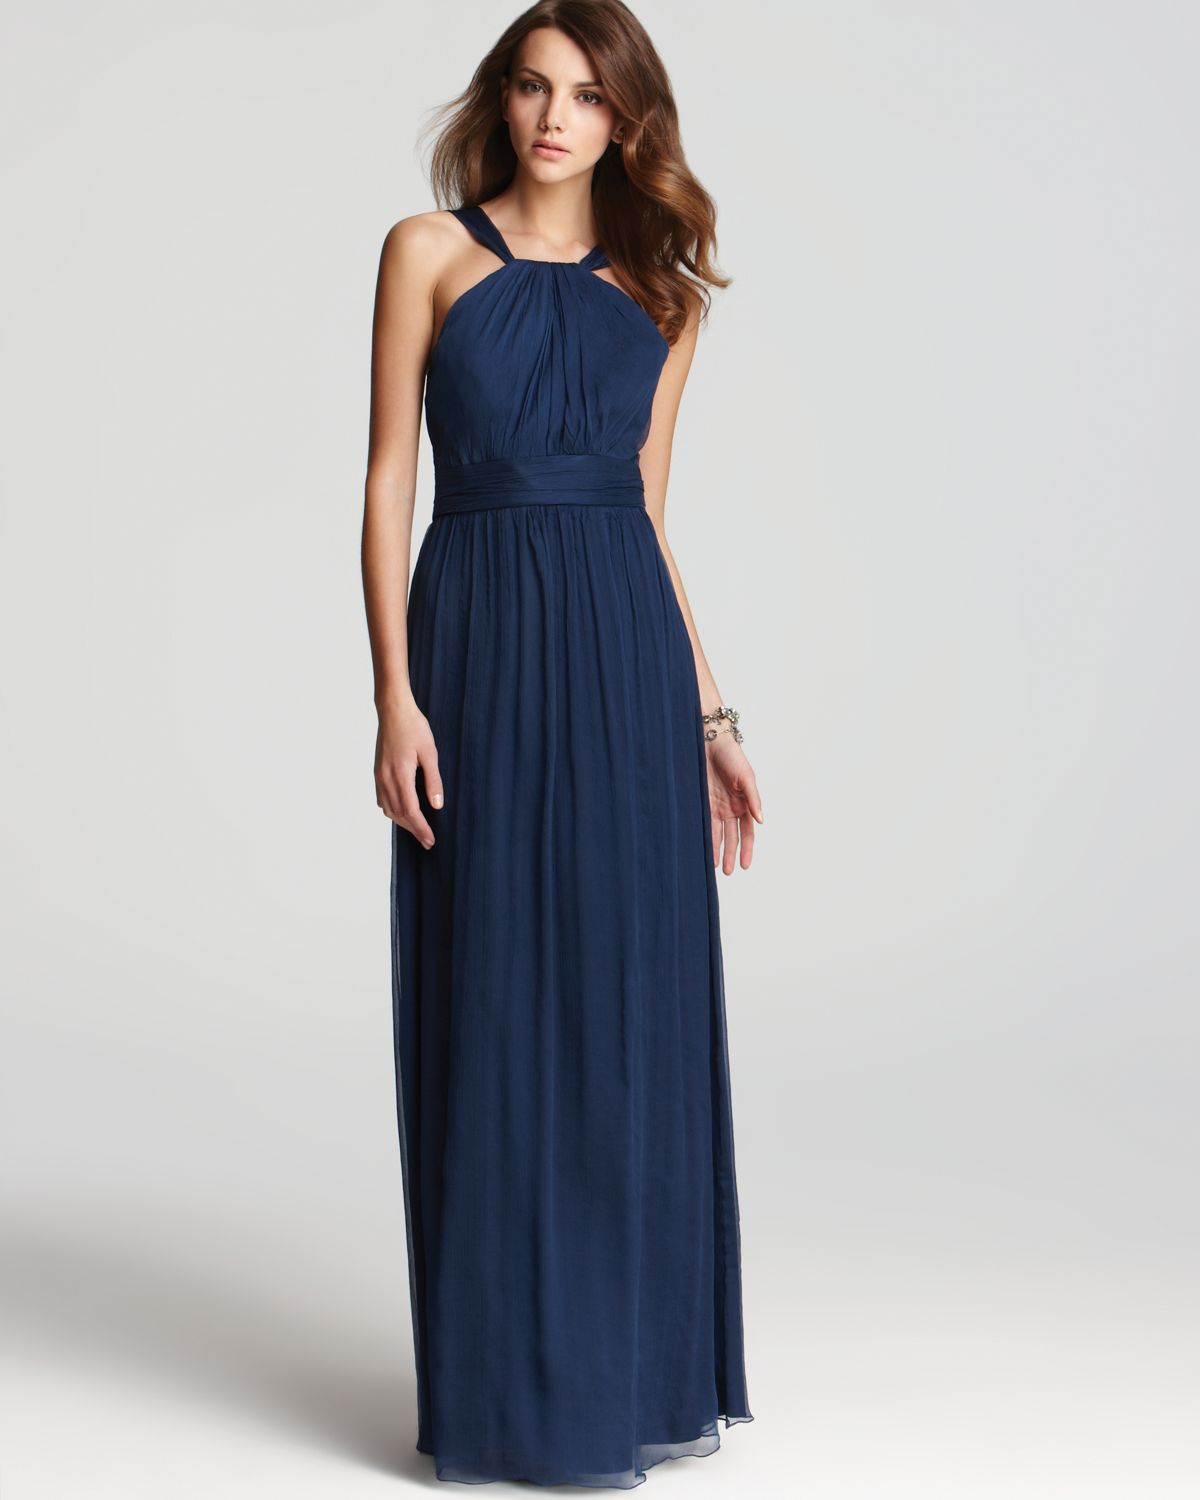 amsale dress high neck french blue bloomingdales wedding dresses Gallery